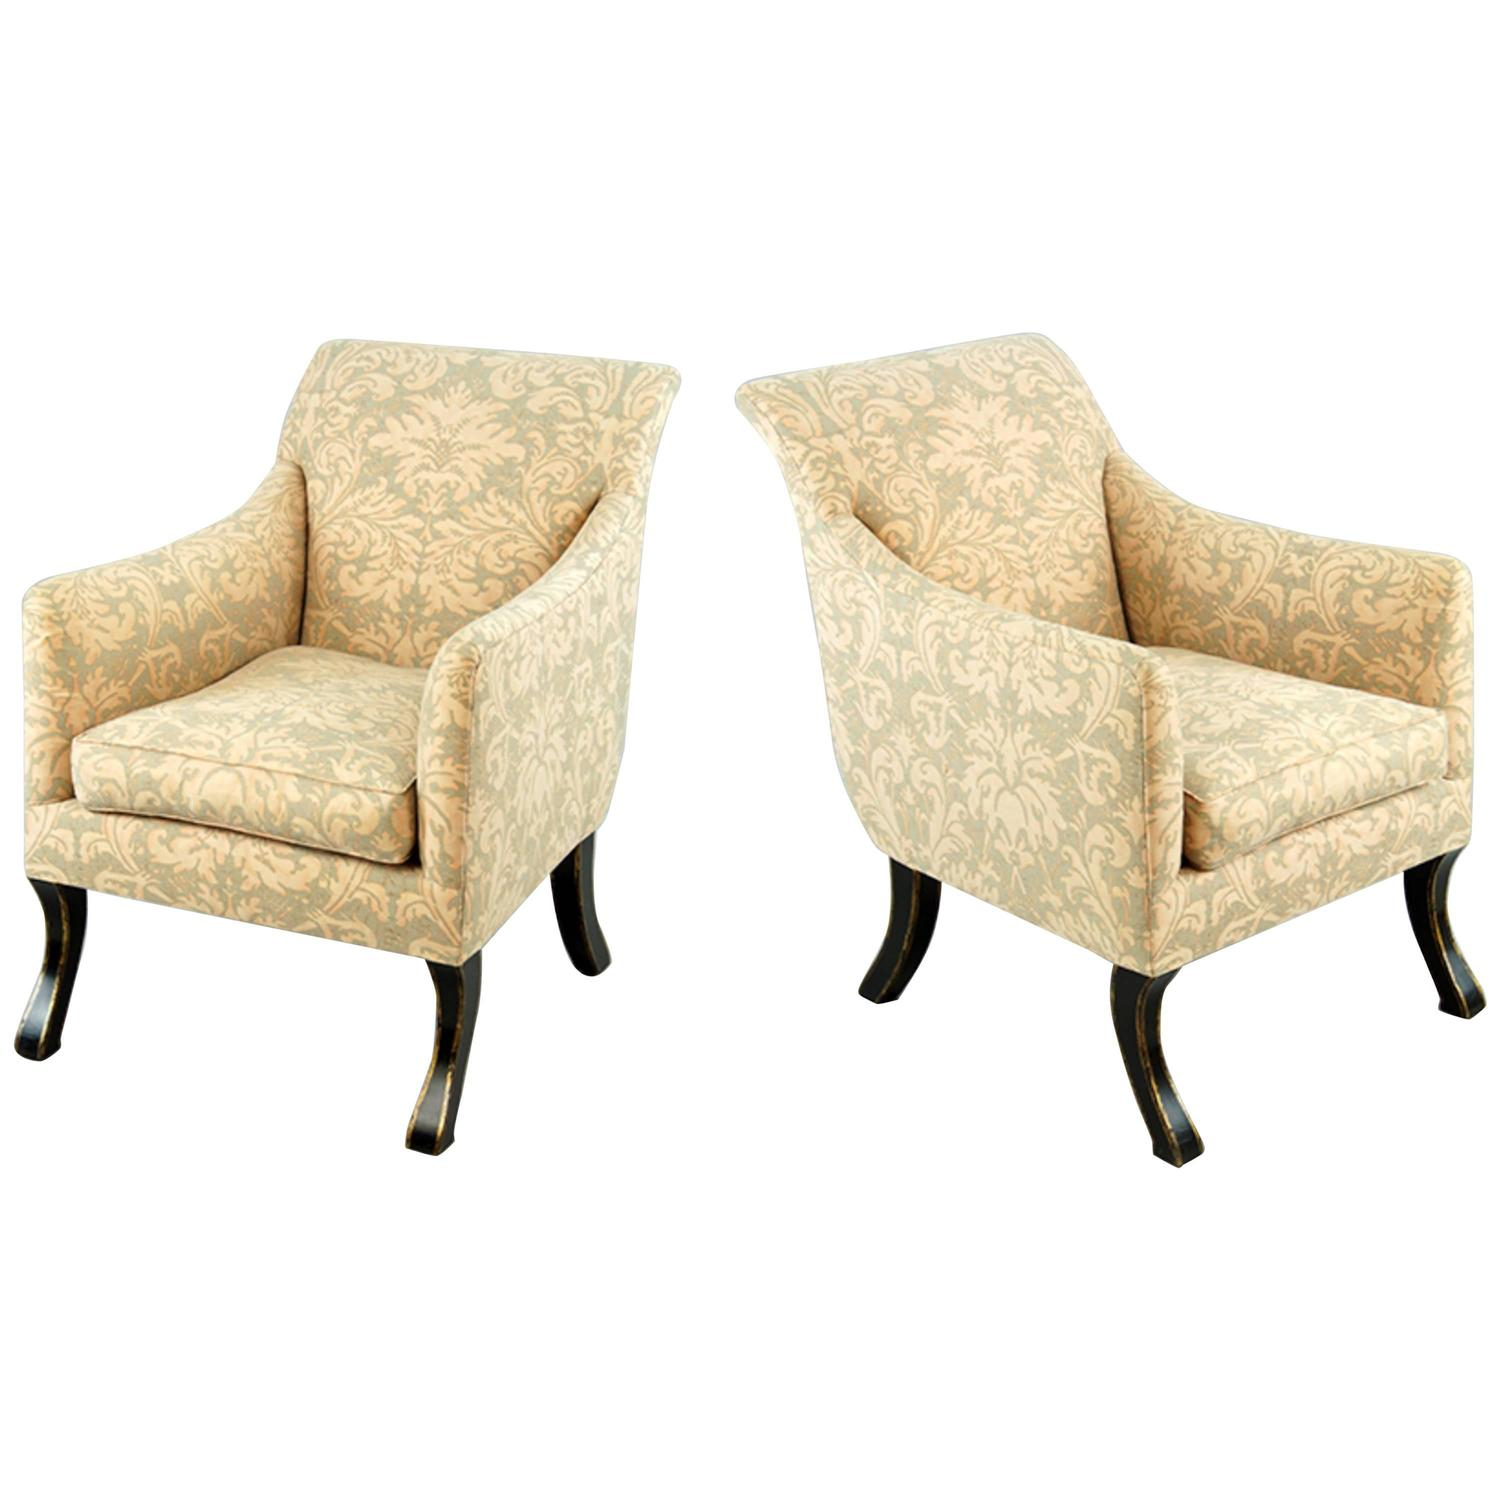 Missoni Fabric Covered Bergere Chair: Exceptional Pair Of Rose Tarlow Armchairs Covered In